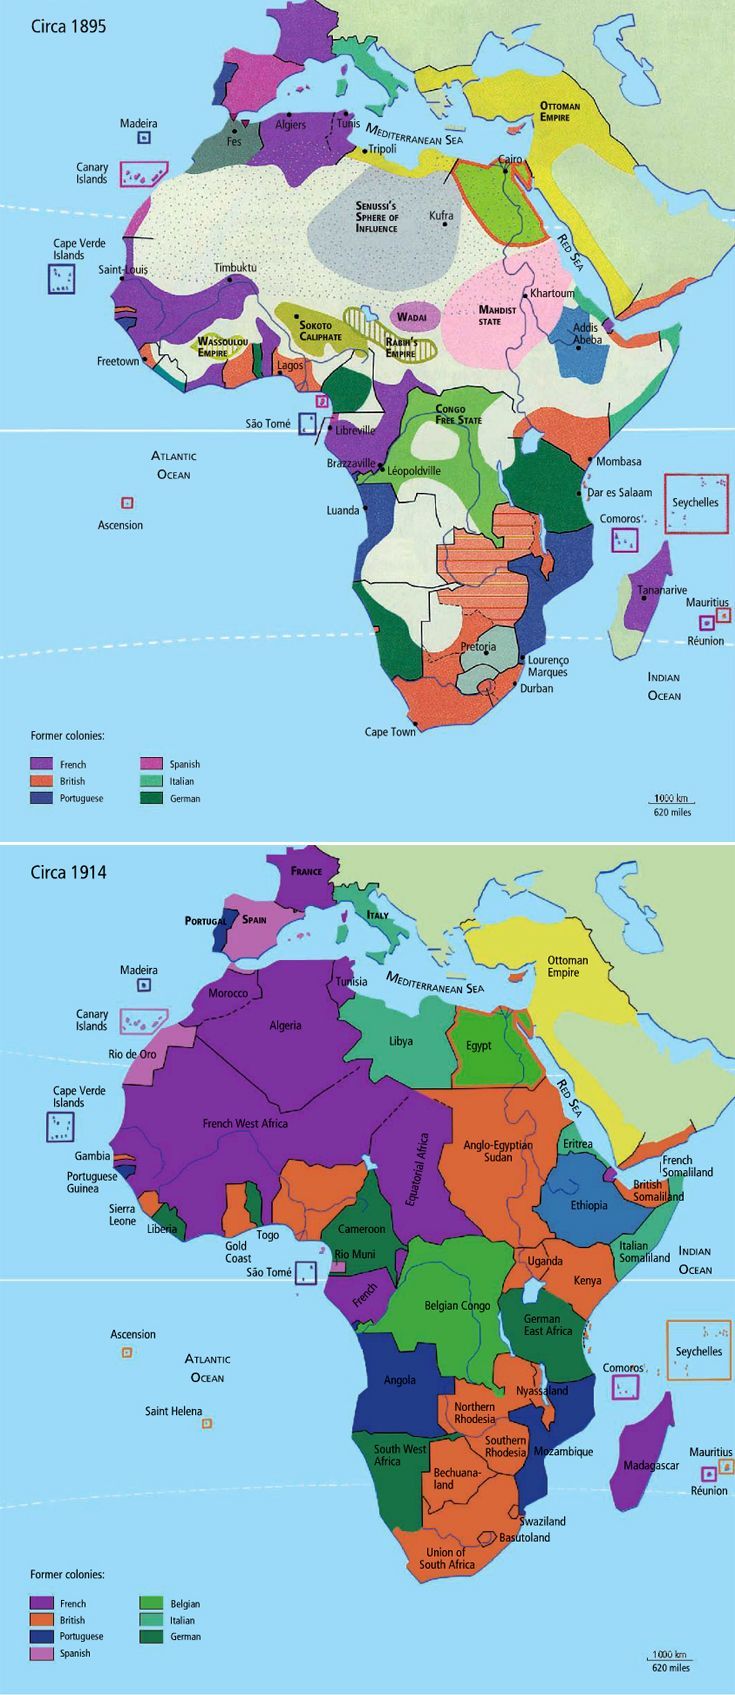 Africa: changes of foreign occupation from ca. 1895 to ca. 1914. Source ~ http://issuu.com/yahzoo/docs/african_art_-_maurice_delafosse